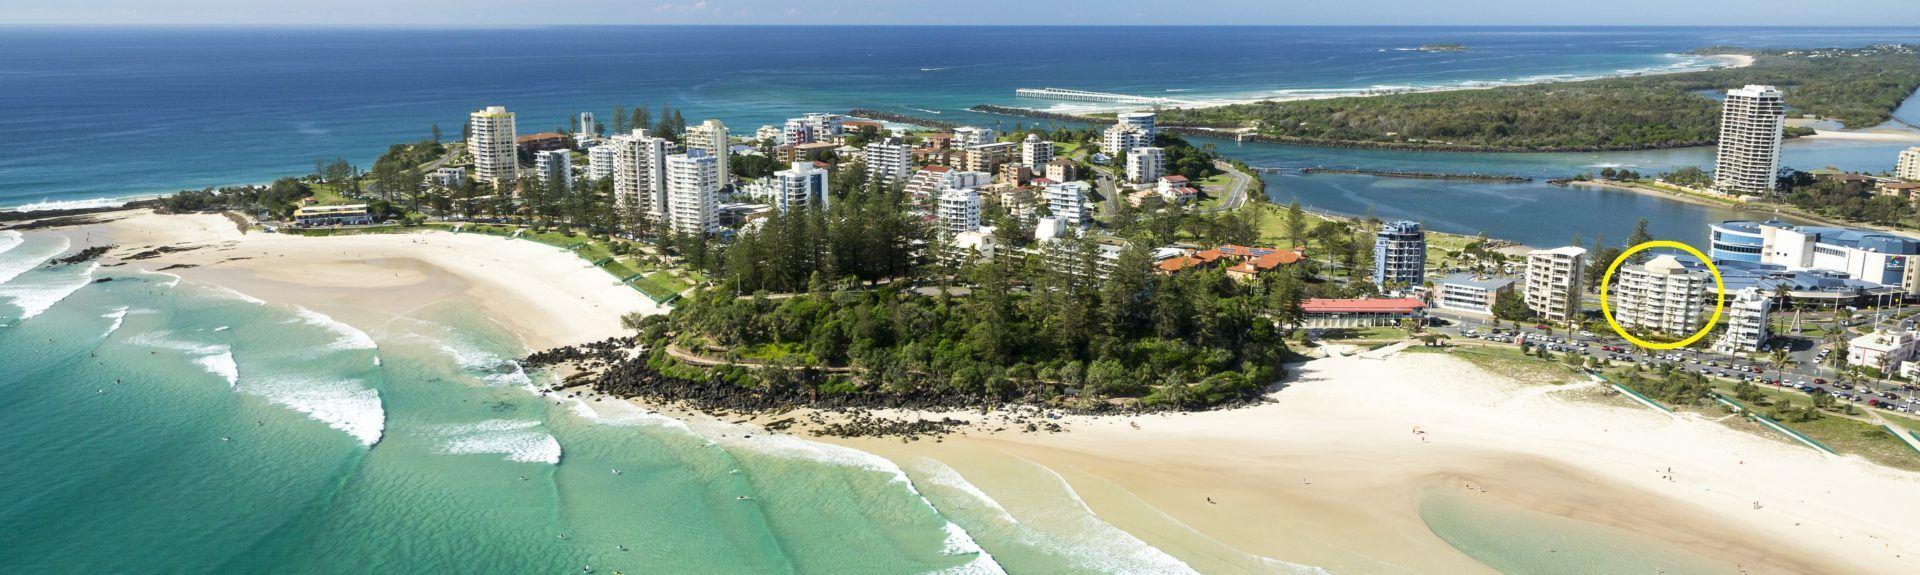 Kirra, Gold Coast, Queensland, Australia